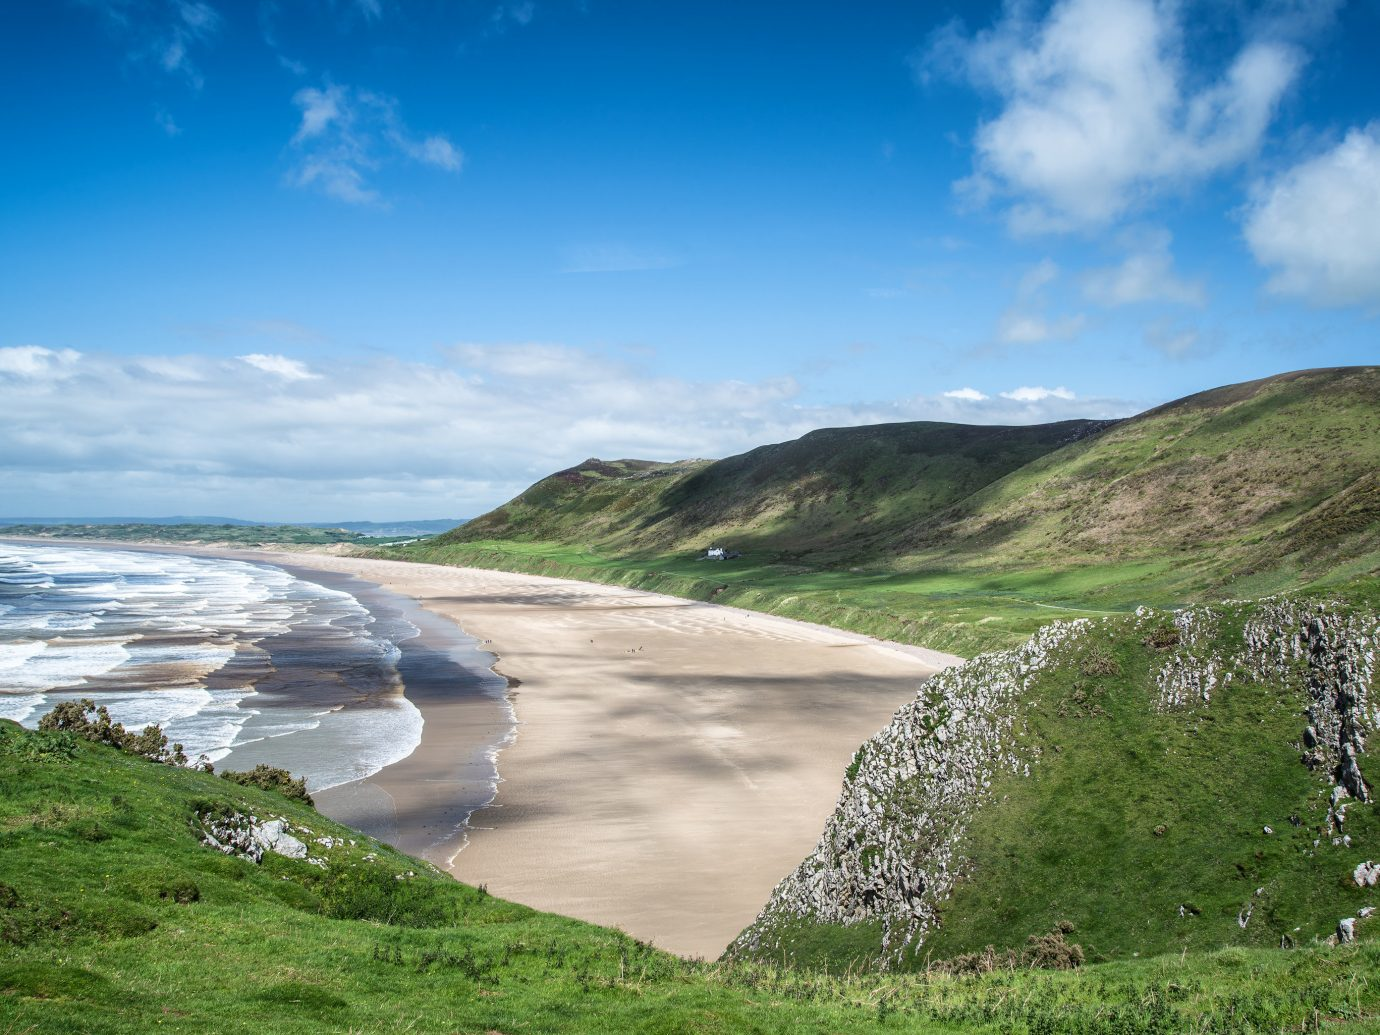 Beach in Rhossili Bay, Wales